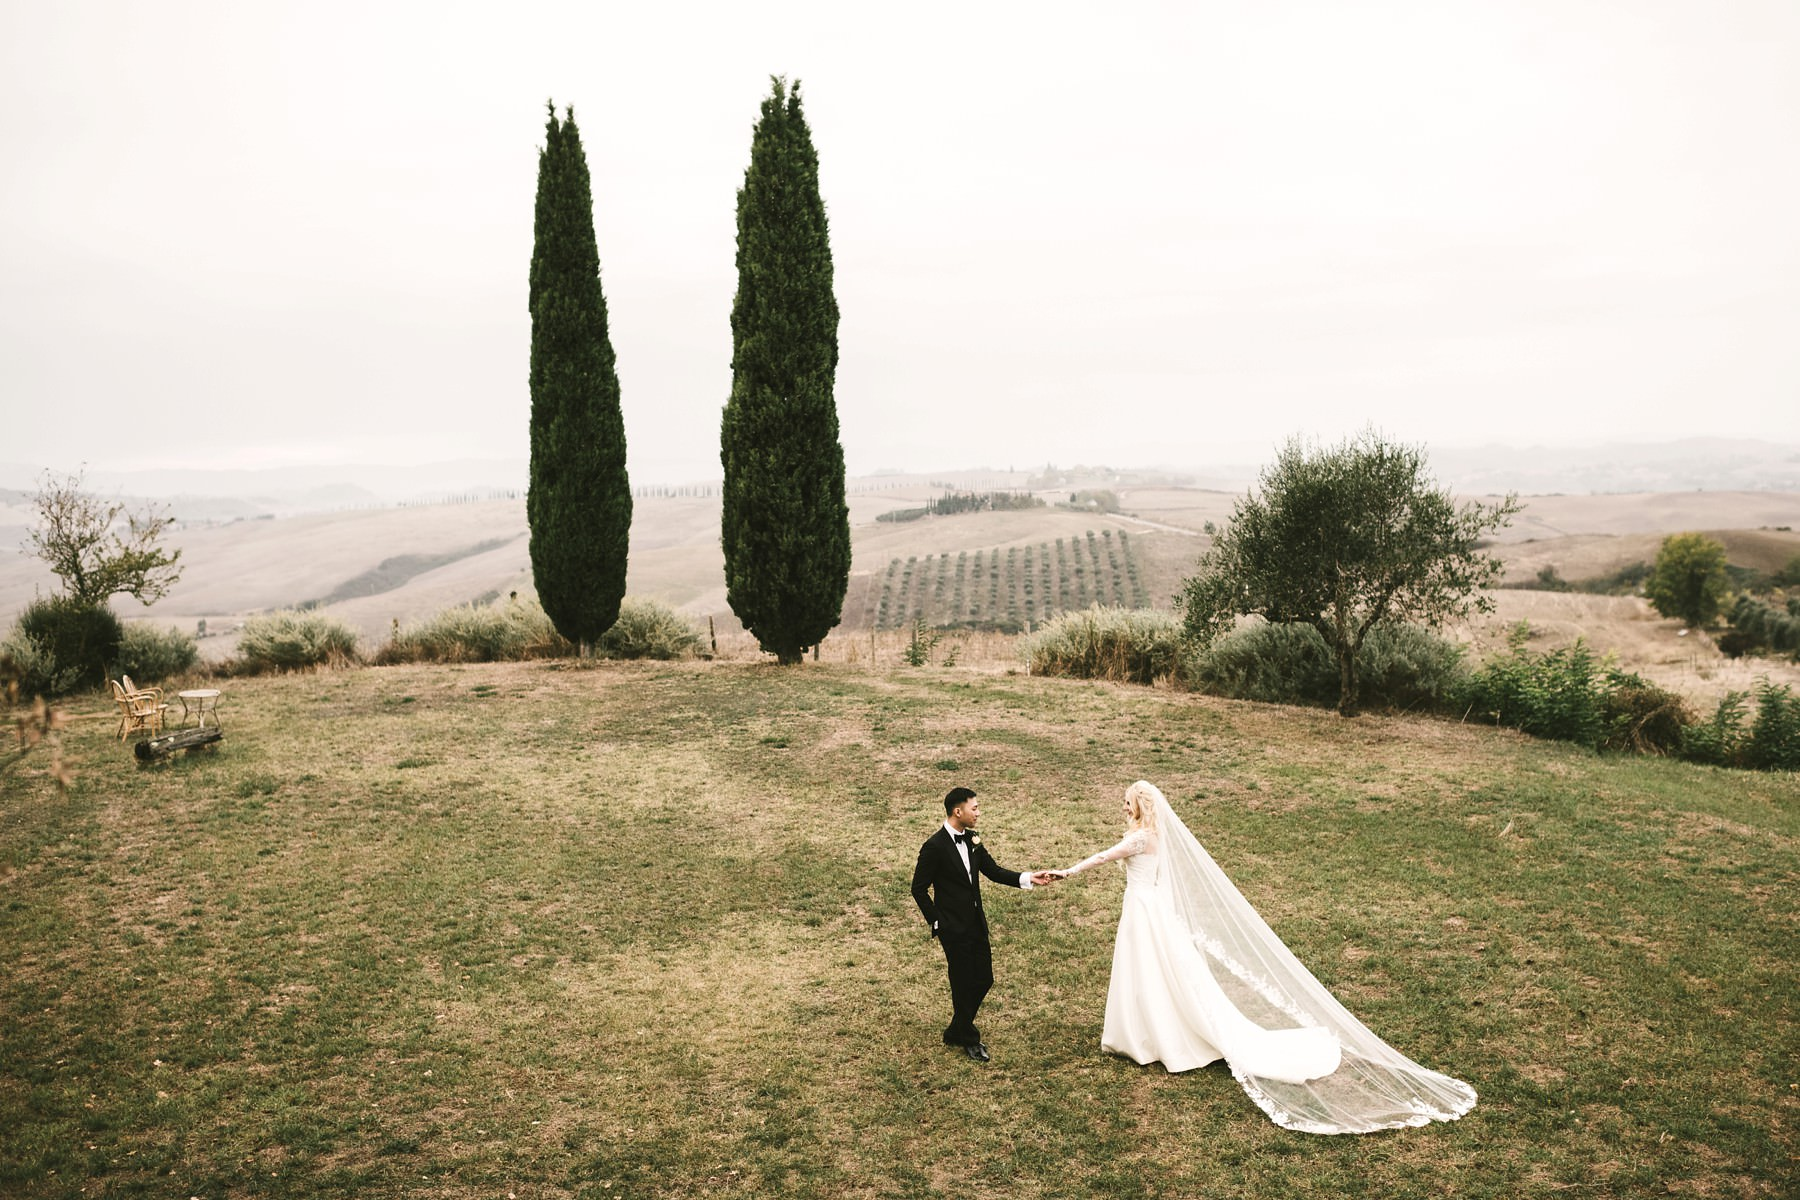 Lovely and elegant wedding photo. Tuscany, Val D'Orcia the best place to get married in Italy